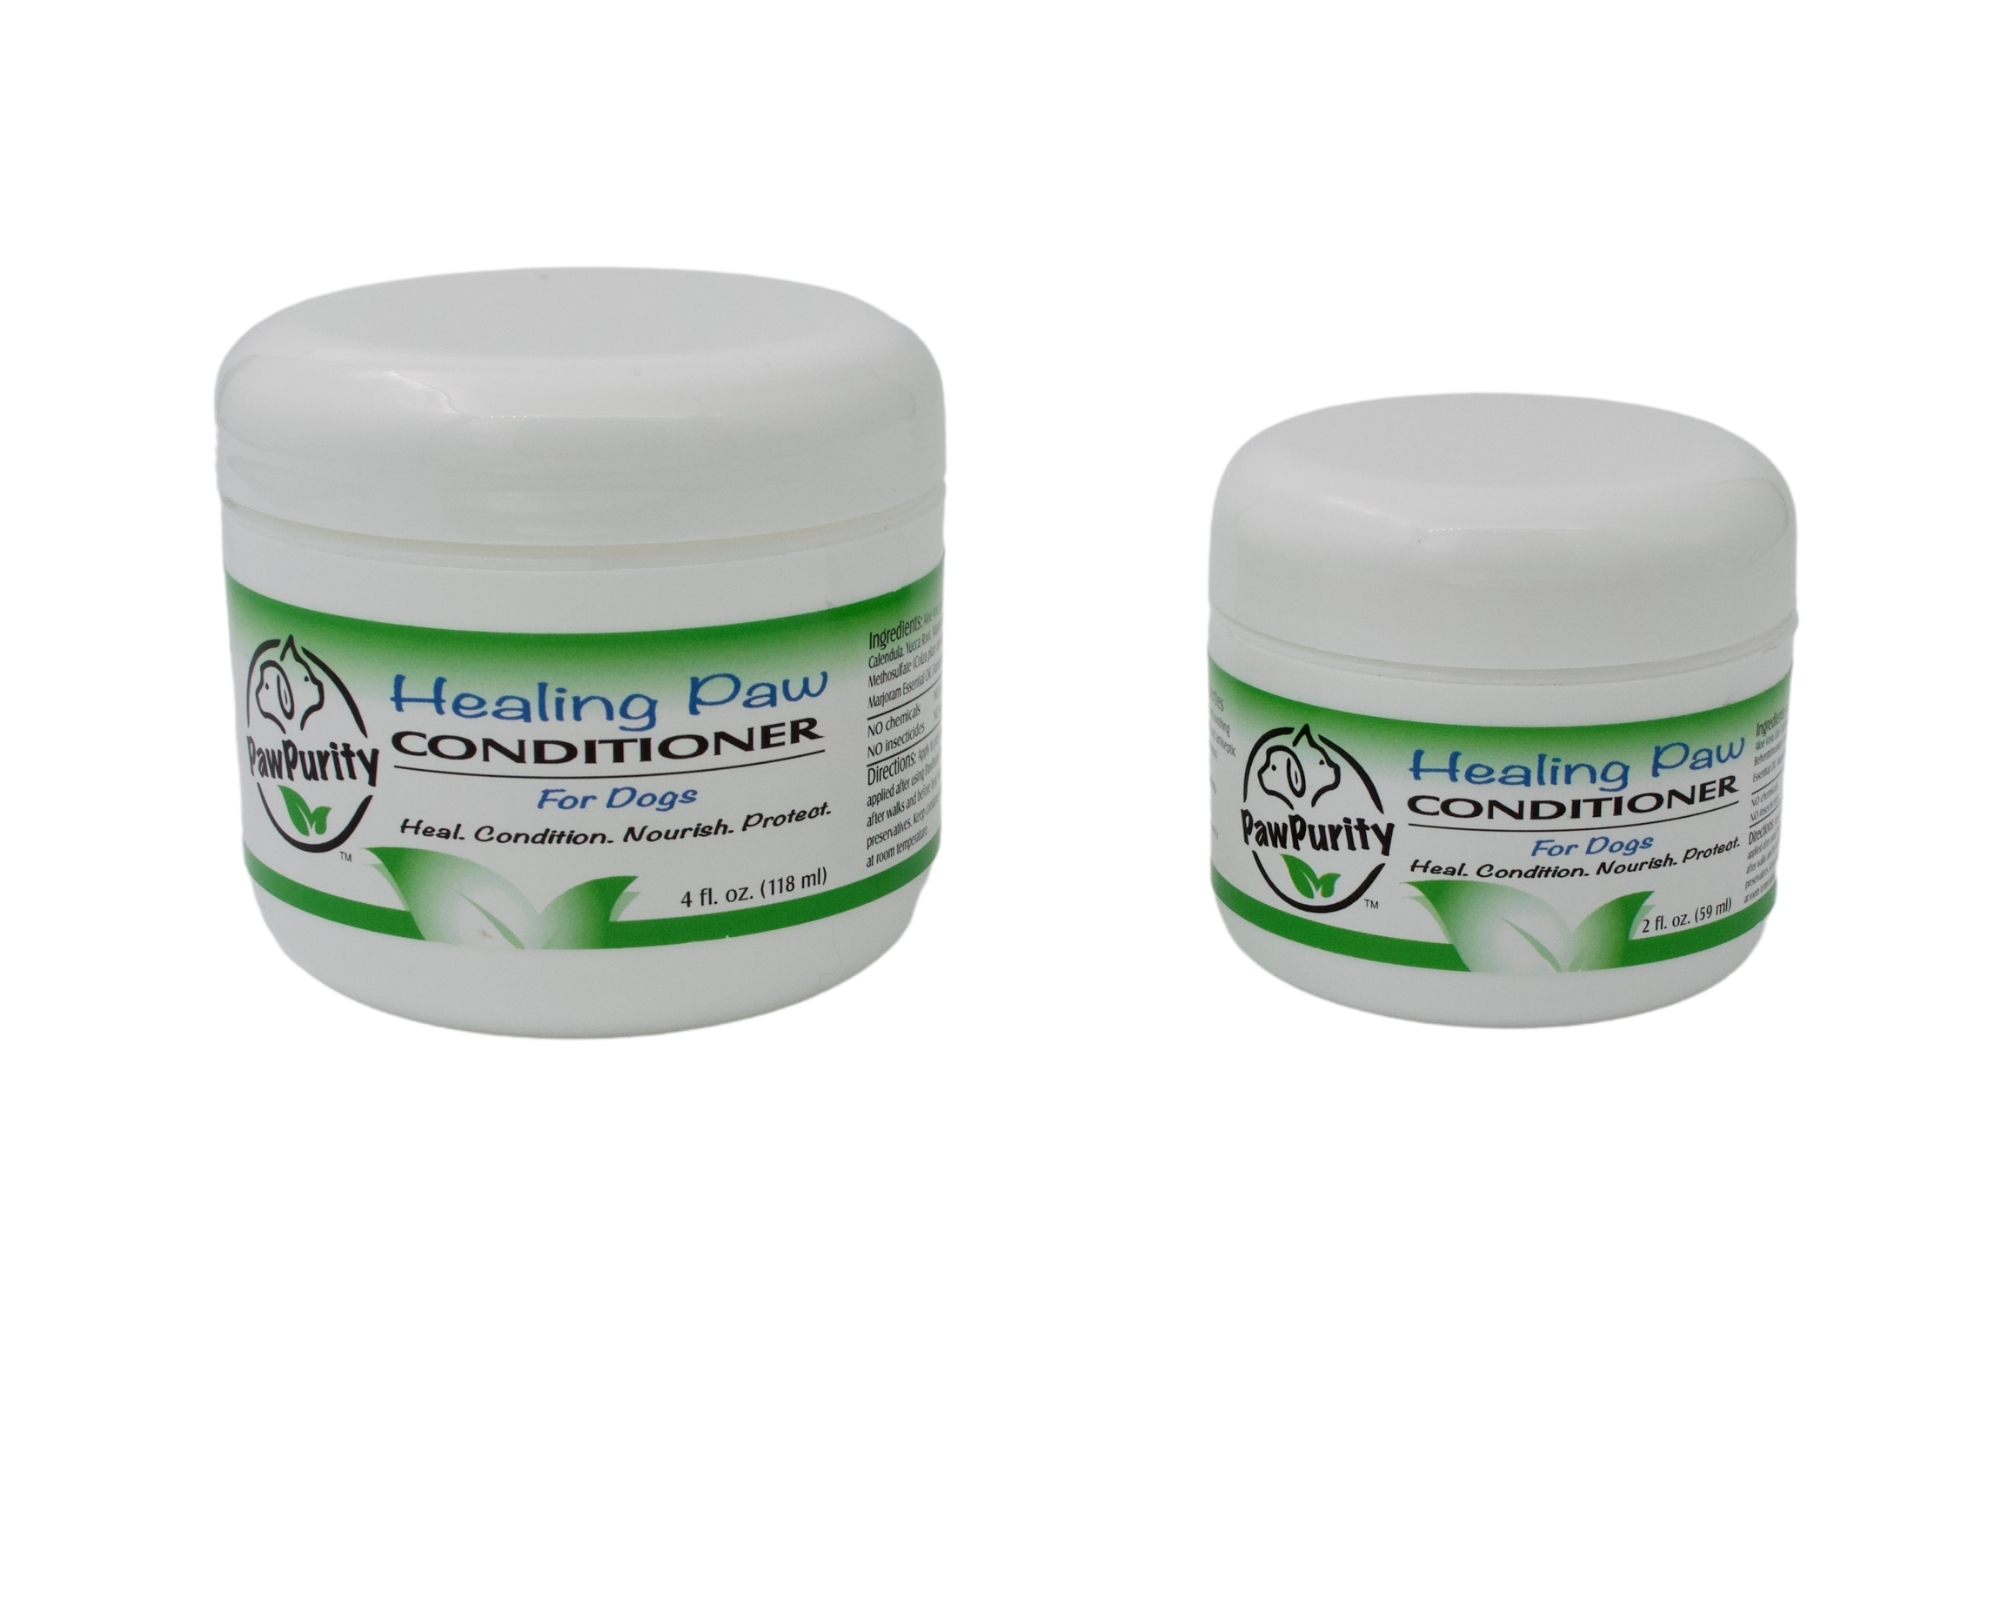 Image of PawPurity Healing Paw Conditioner in various sizes